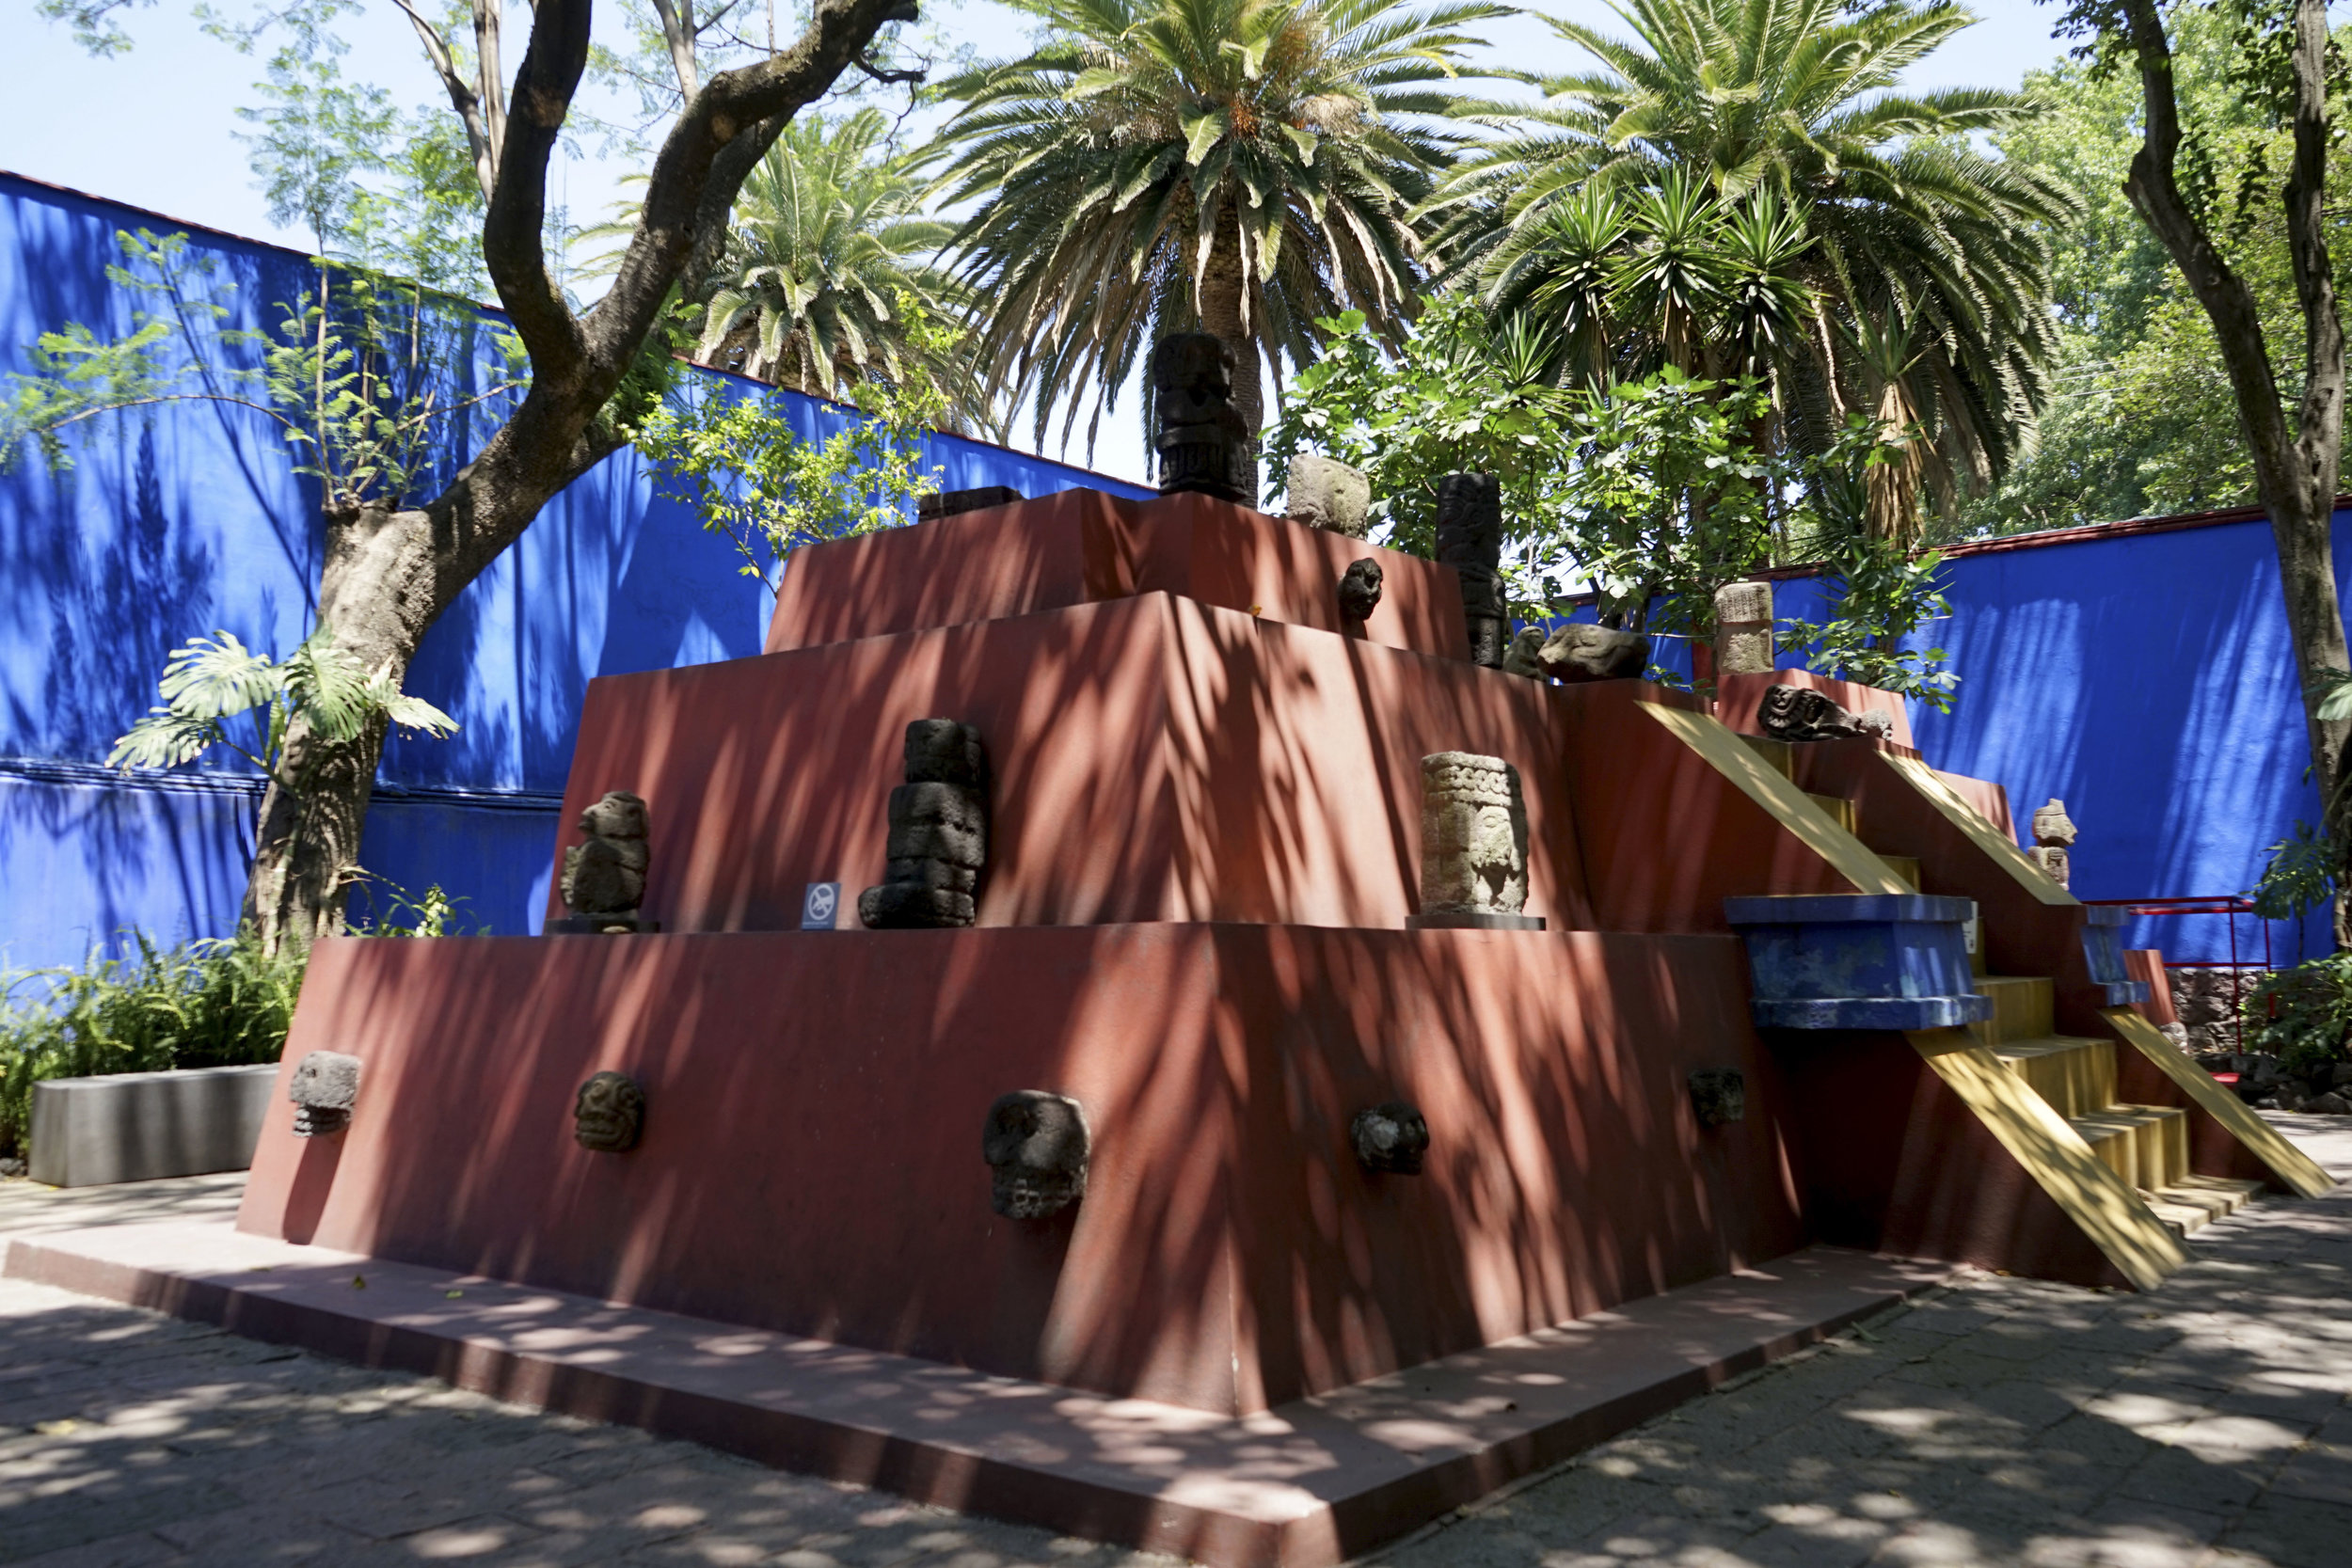 Krity S Mexico City Frida Kahlo Museum